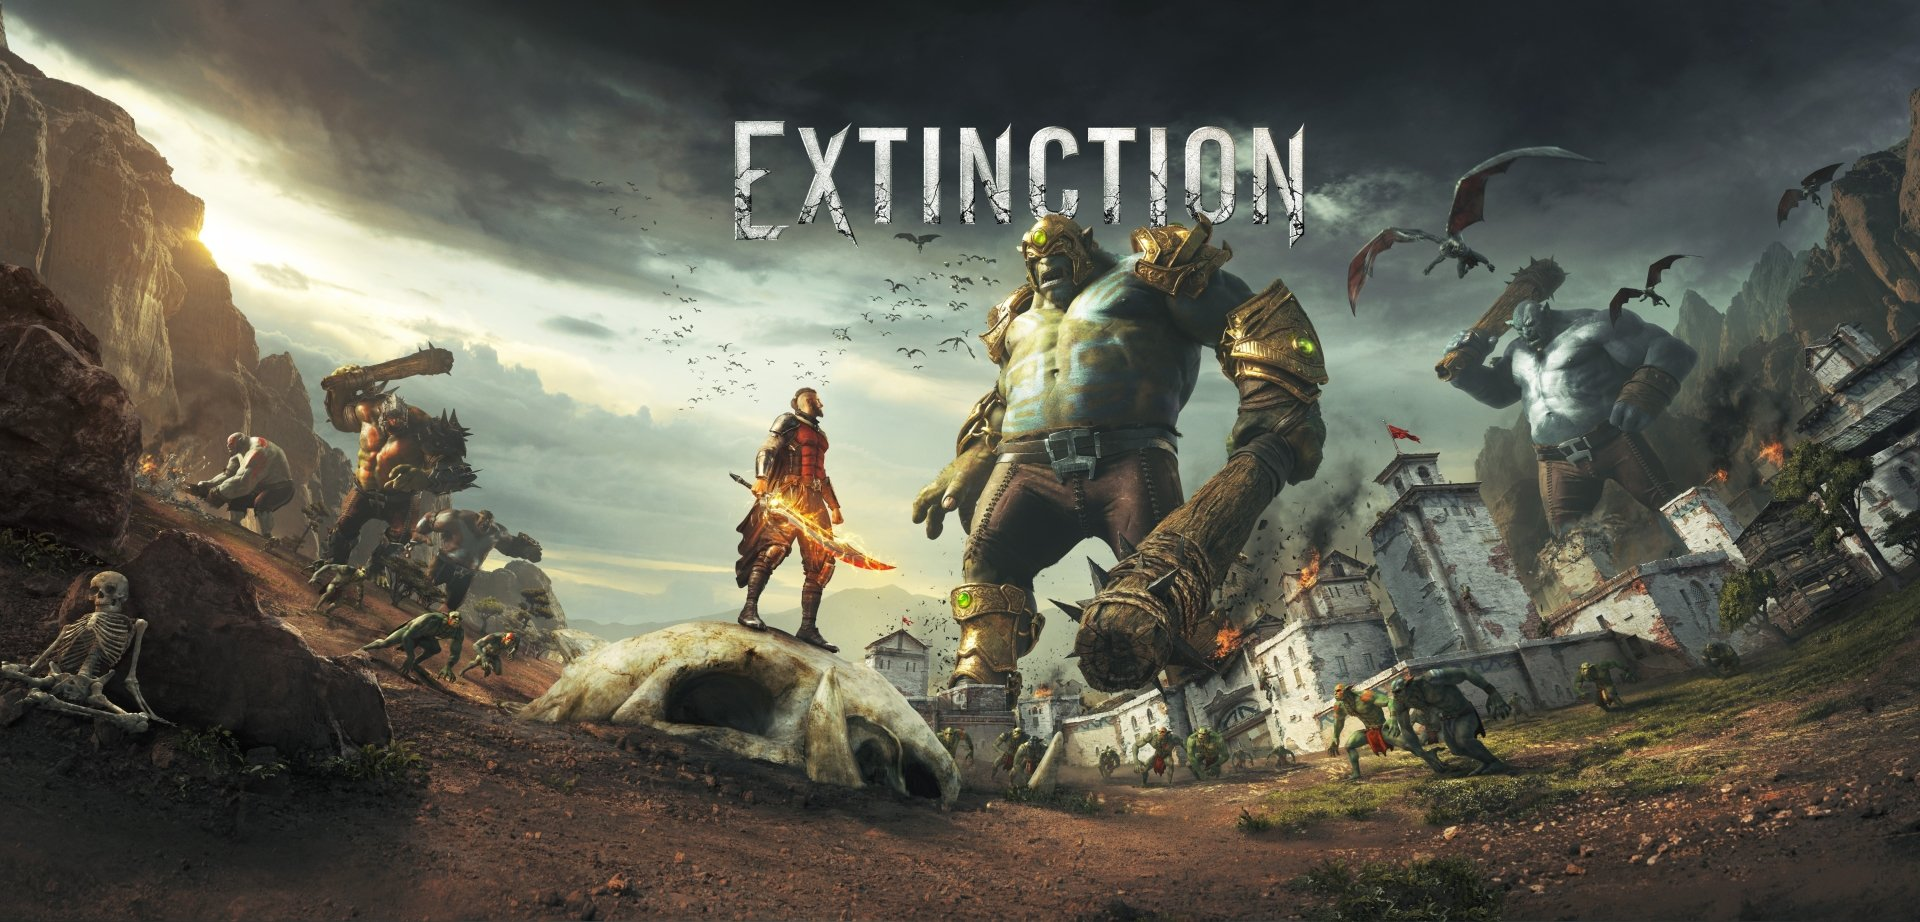 Video Game - Extinction  Sword Warrior Giant Orc Extinction (Video Game) Wallpaper